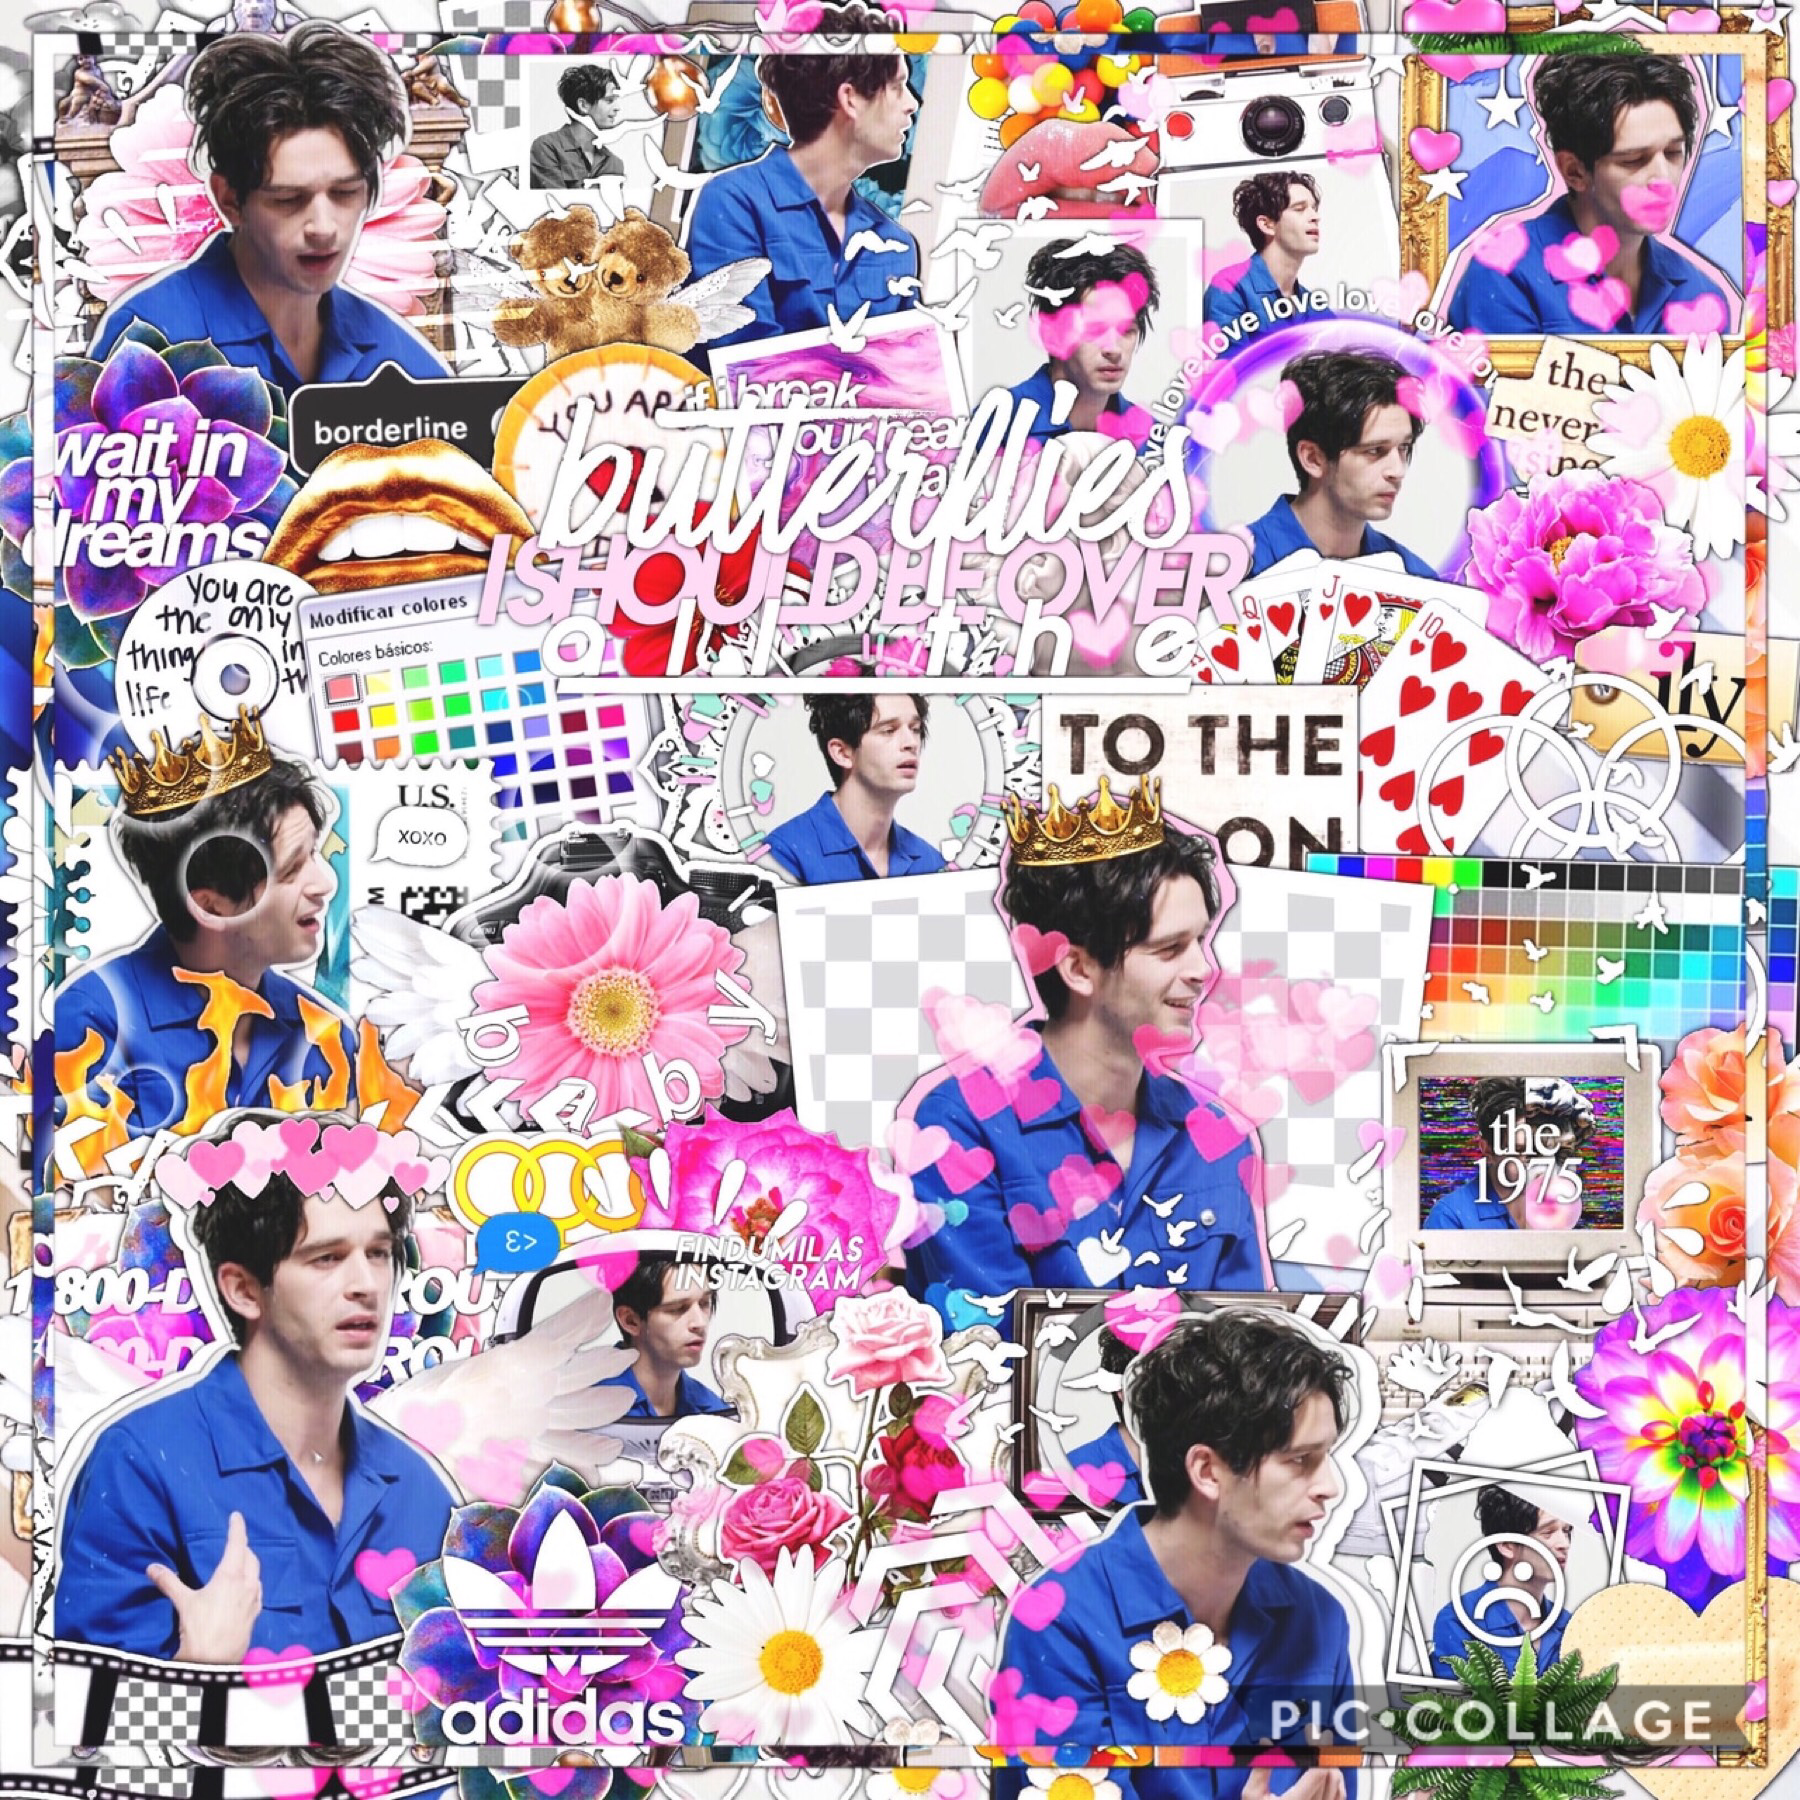 ⋆✧✩☆𝓽𝓪𝓹 𝓪𝓷𝓰𝓮𝓵𝓼☆✩✧⋆  im back x school has been so busy! but it's finally the holidays and I'm hoping to post every two or so days x tell me what you think of this edit, and if you'd like to be friends then feel free to introduce yourself! x